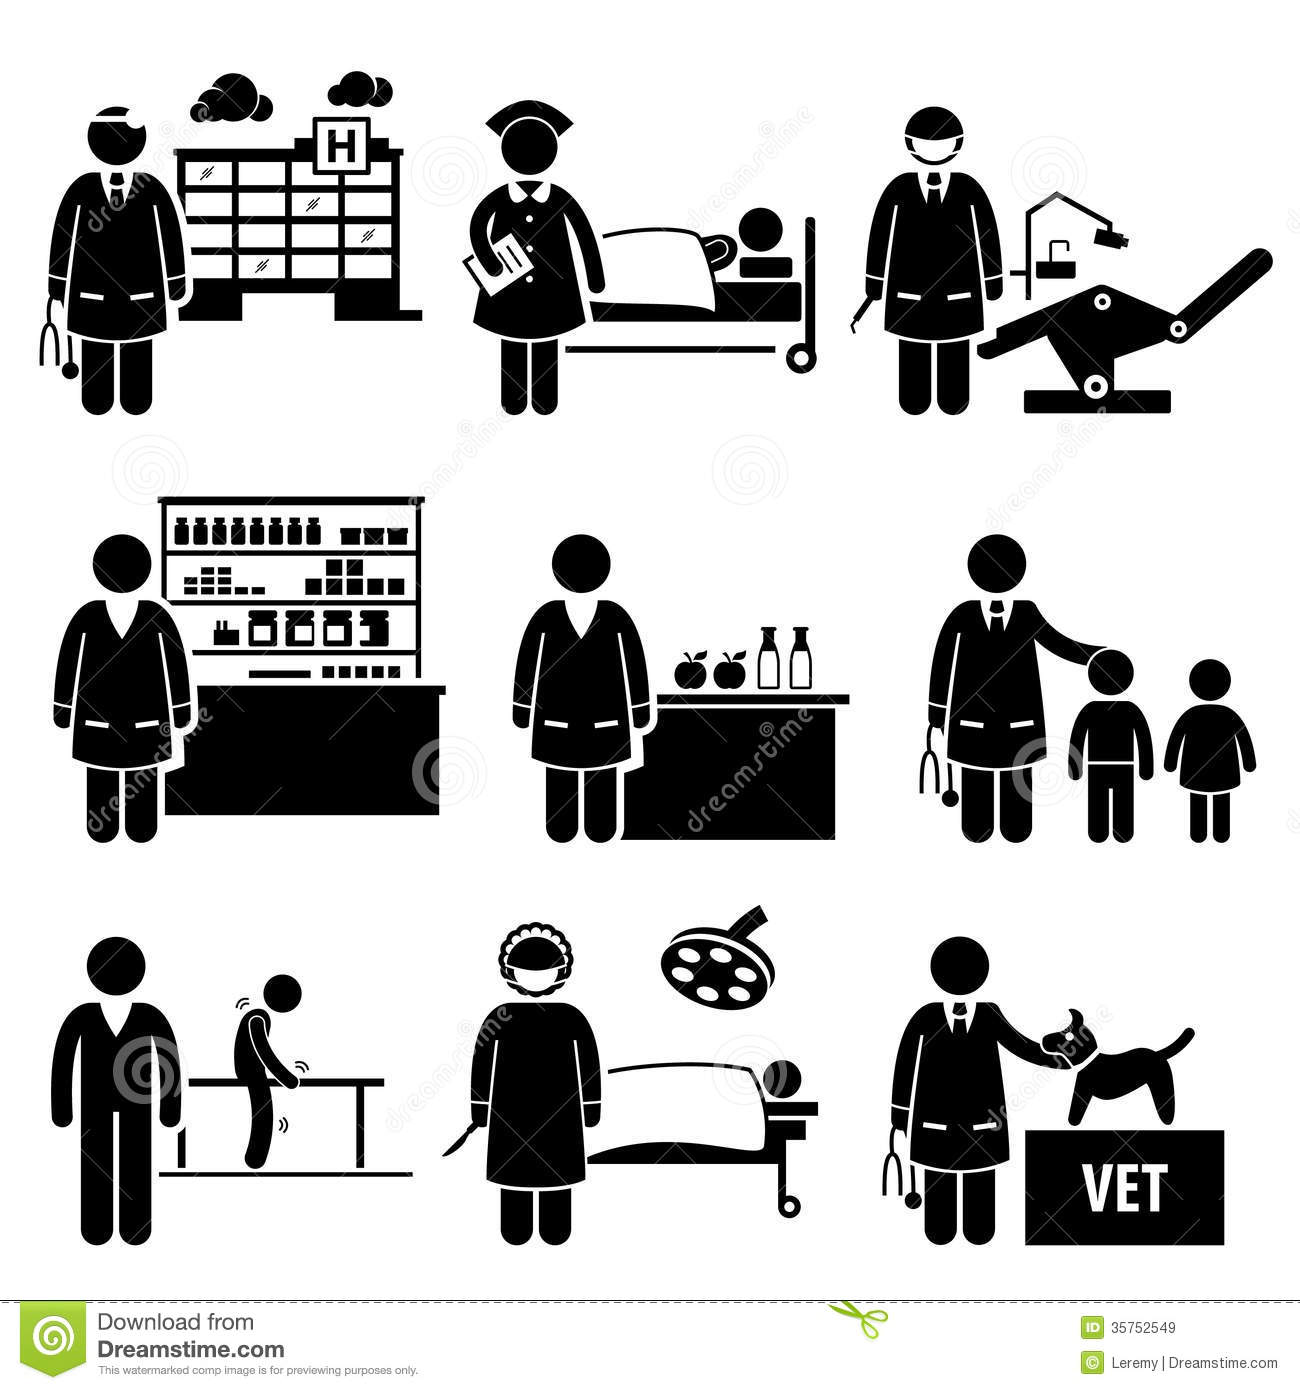 Royalty Free Stock Images Medical Healthcare Hospital Jobs Occupations Caree Set Human Pictograms Representing Professions People Image35752549 on back ache